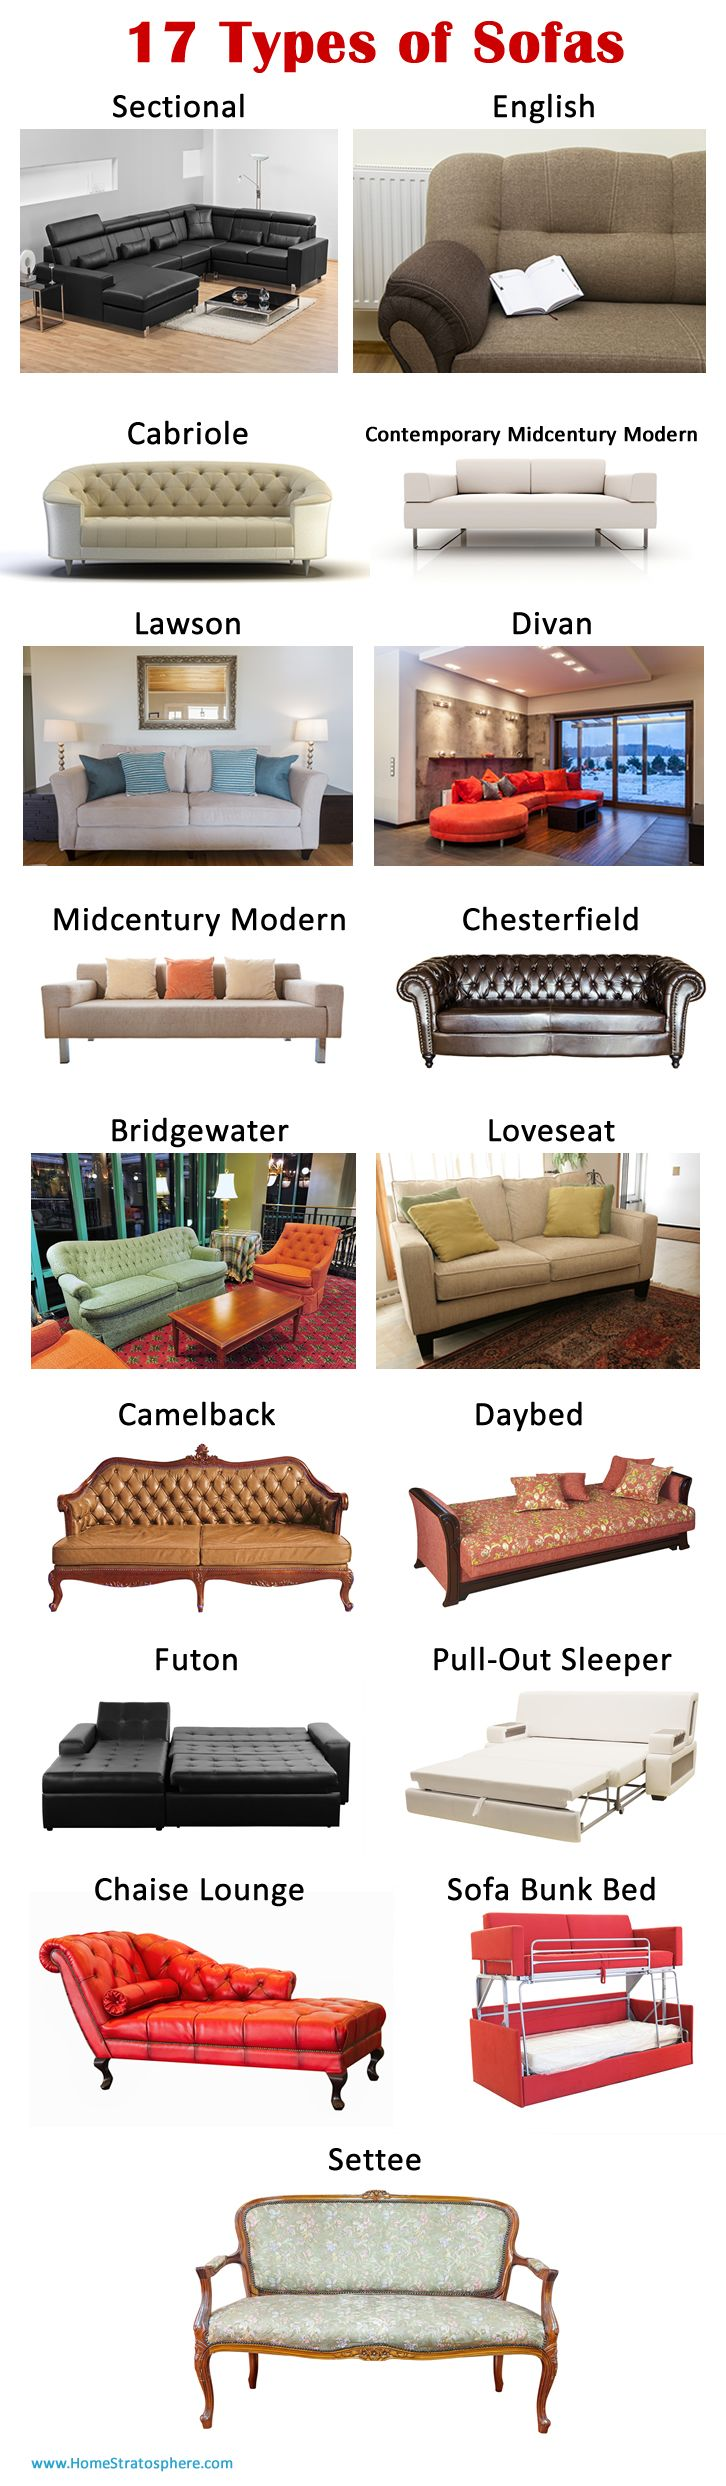 Different Types Of Sofa Beds Vfrtrendpressnl